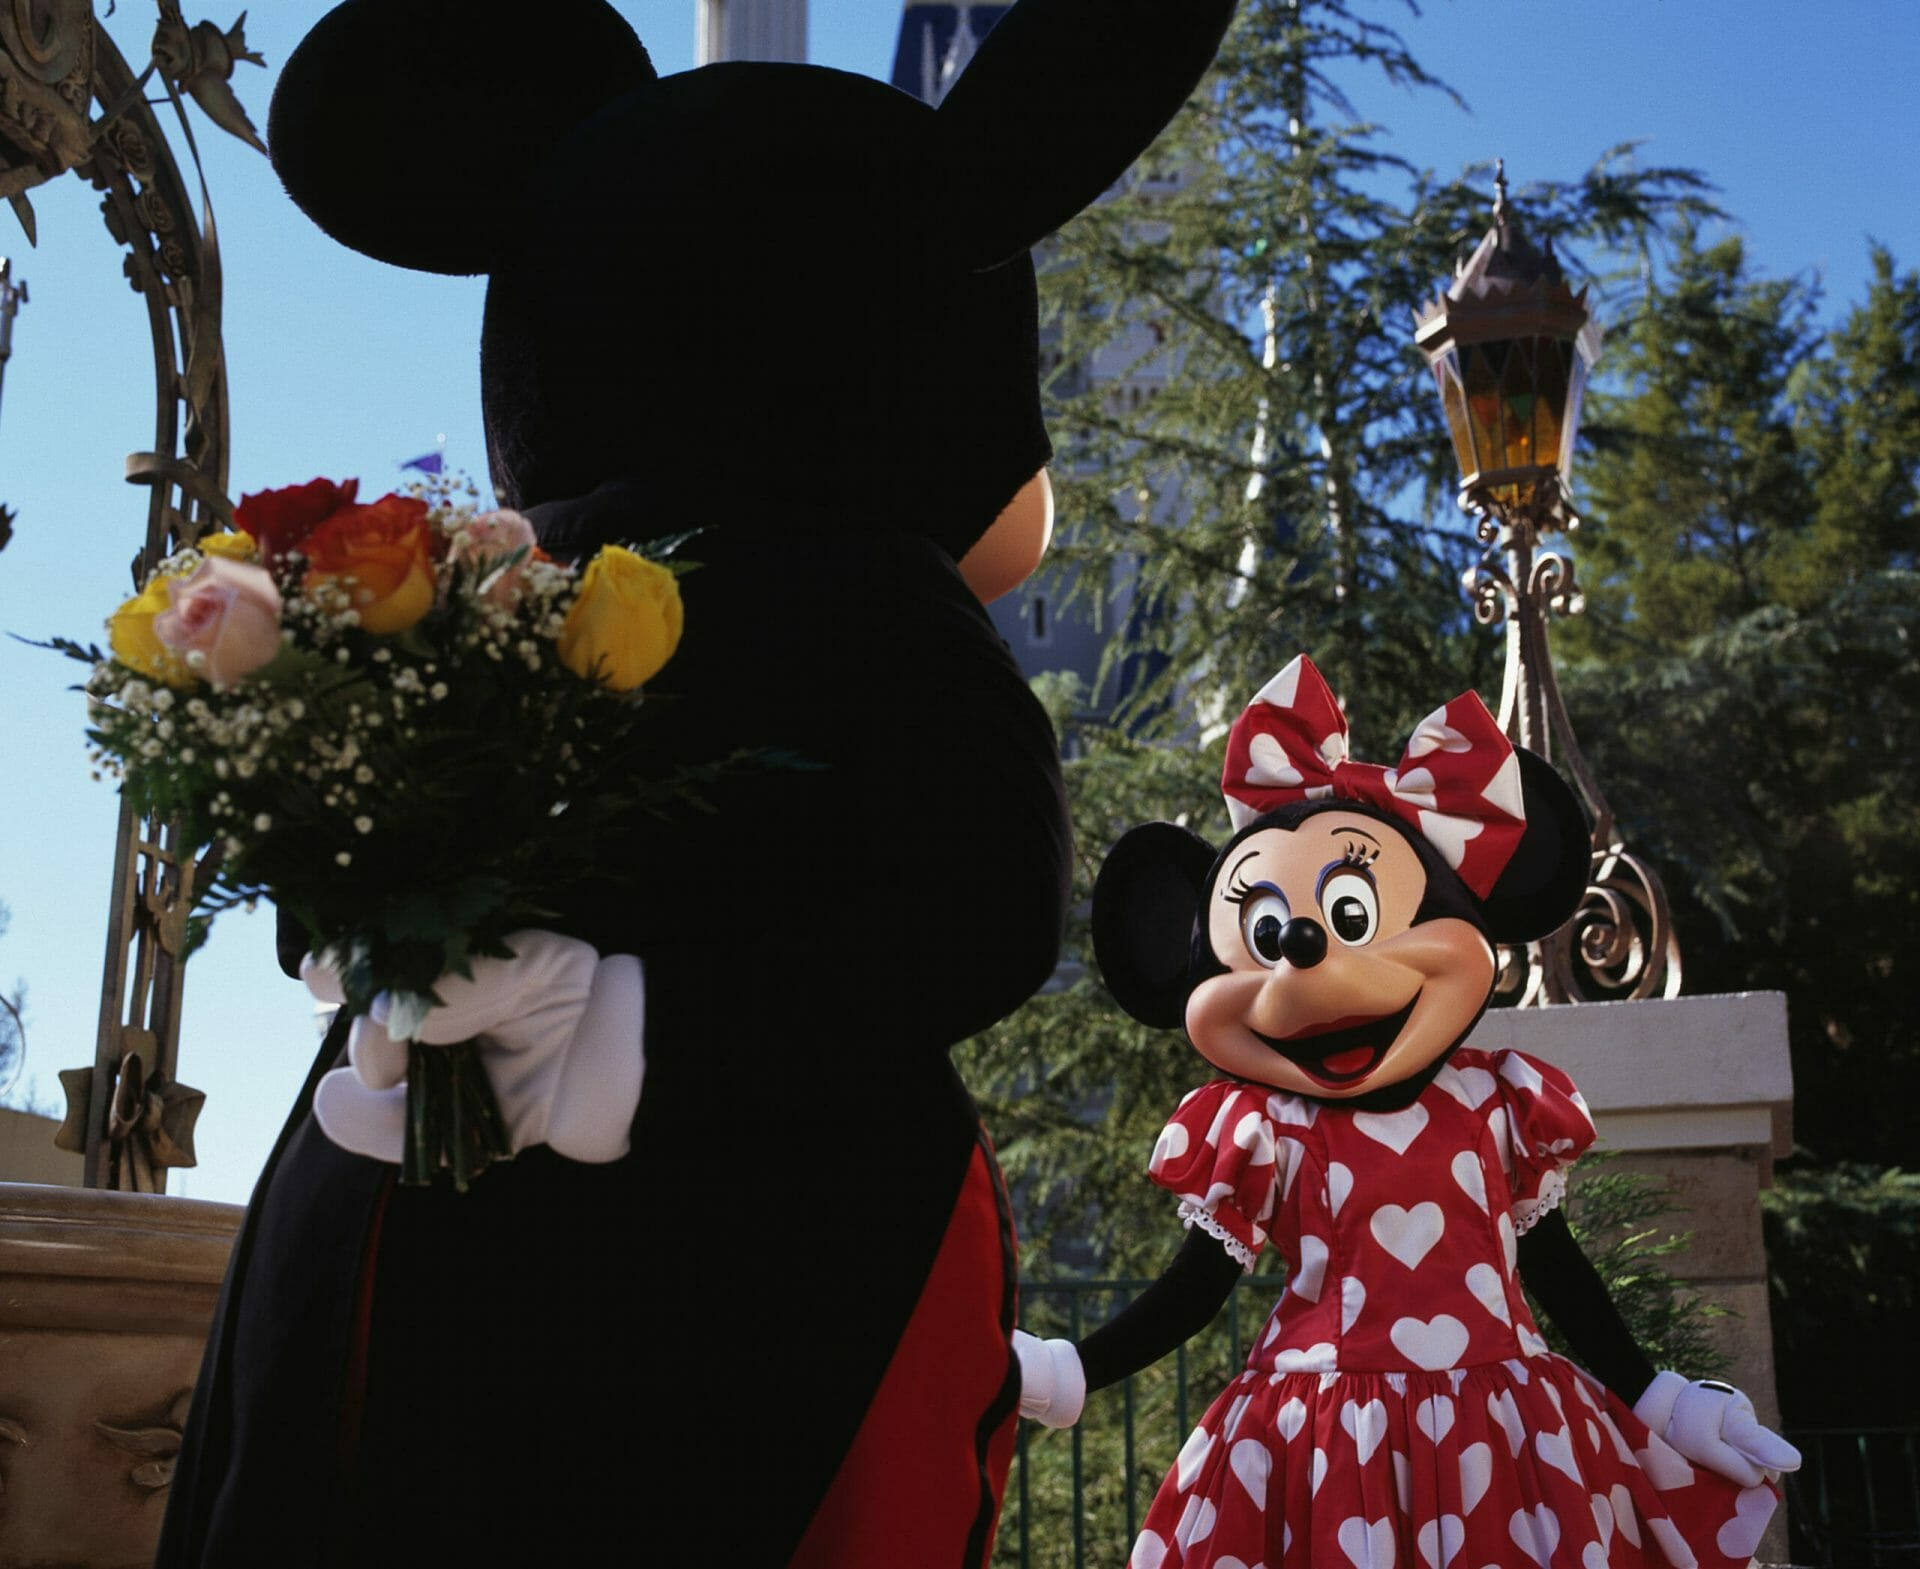 5 Romantic Ways to Spend Valentine's Day at Walt Disney World